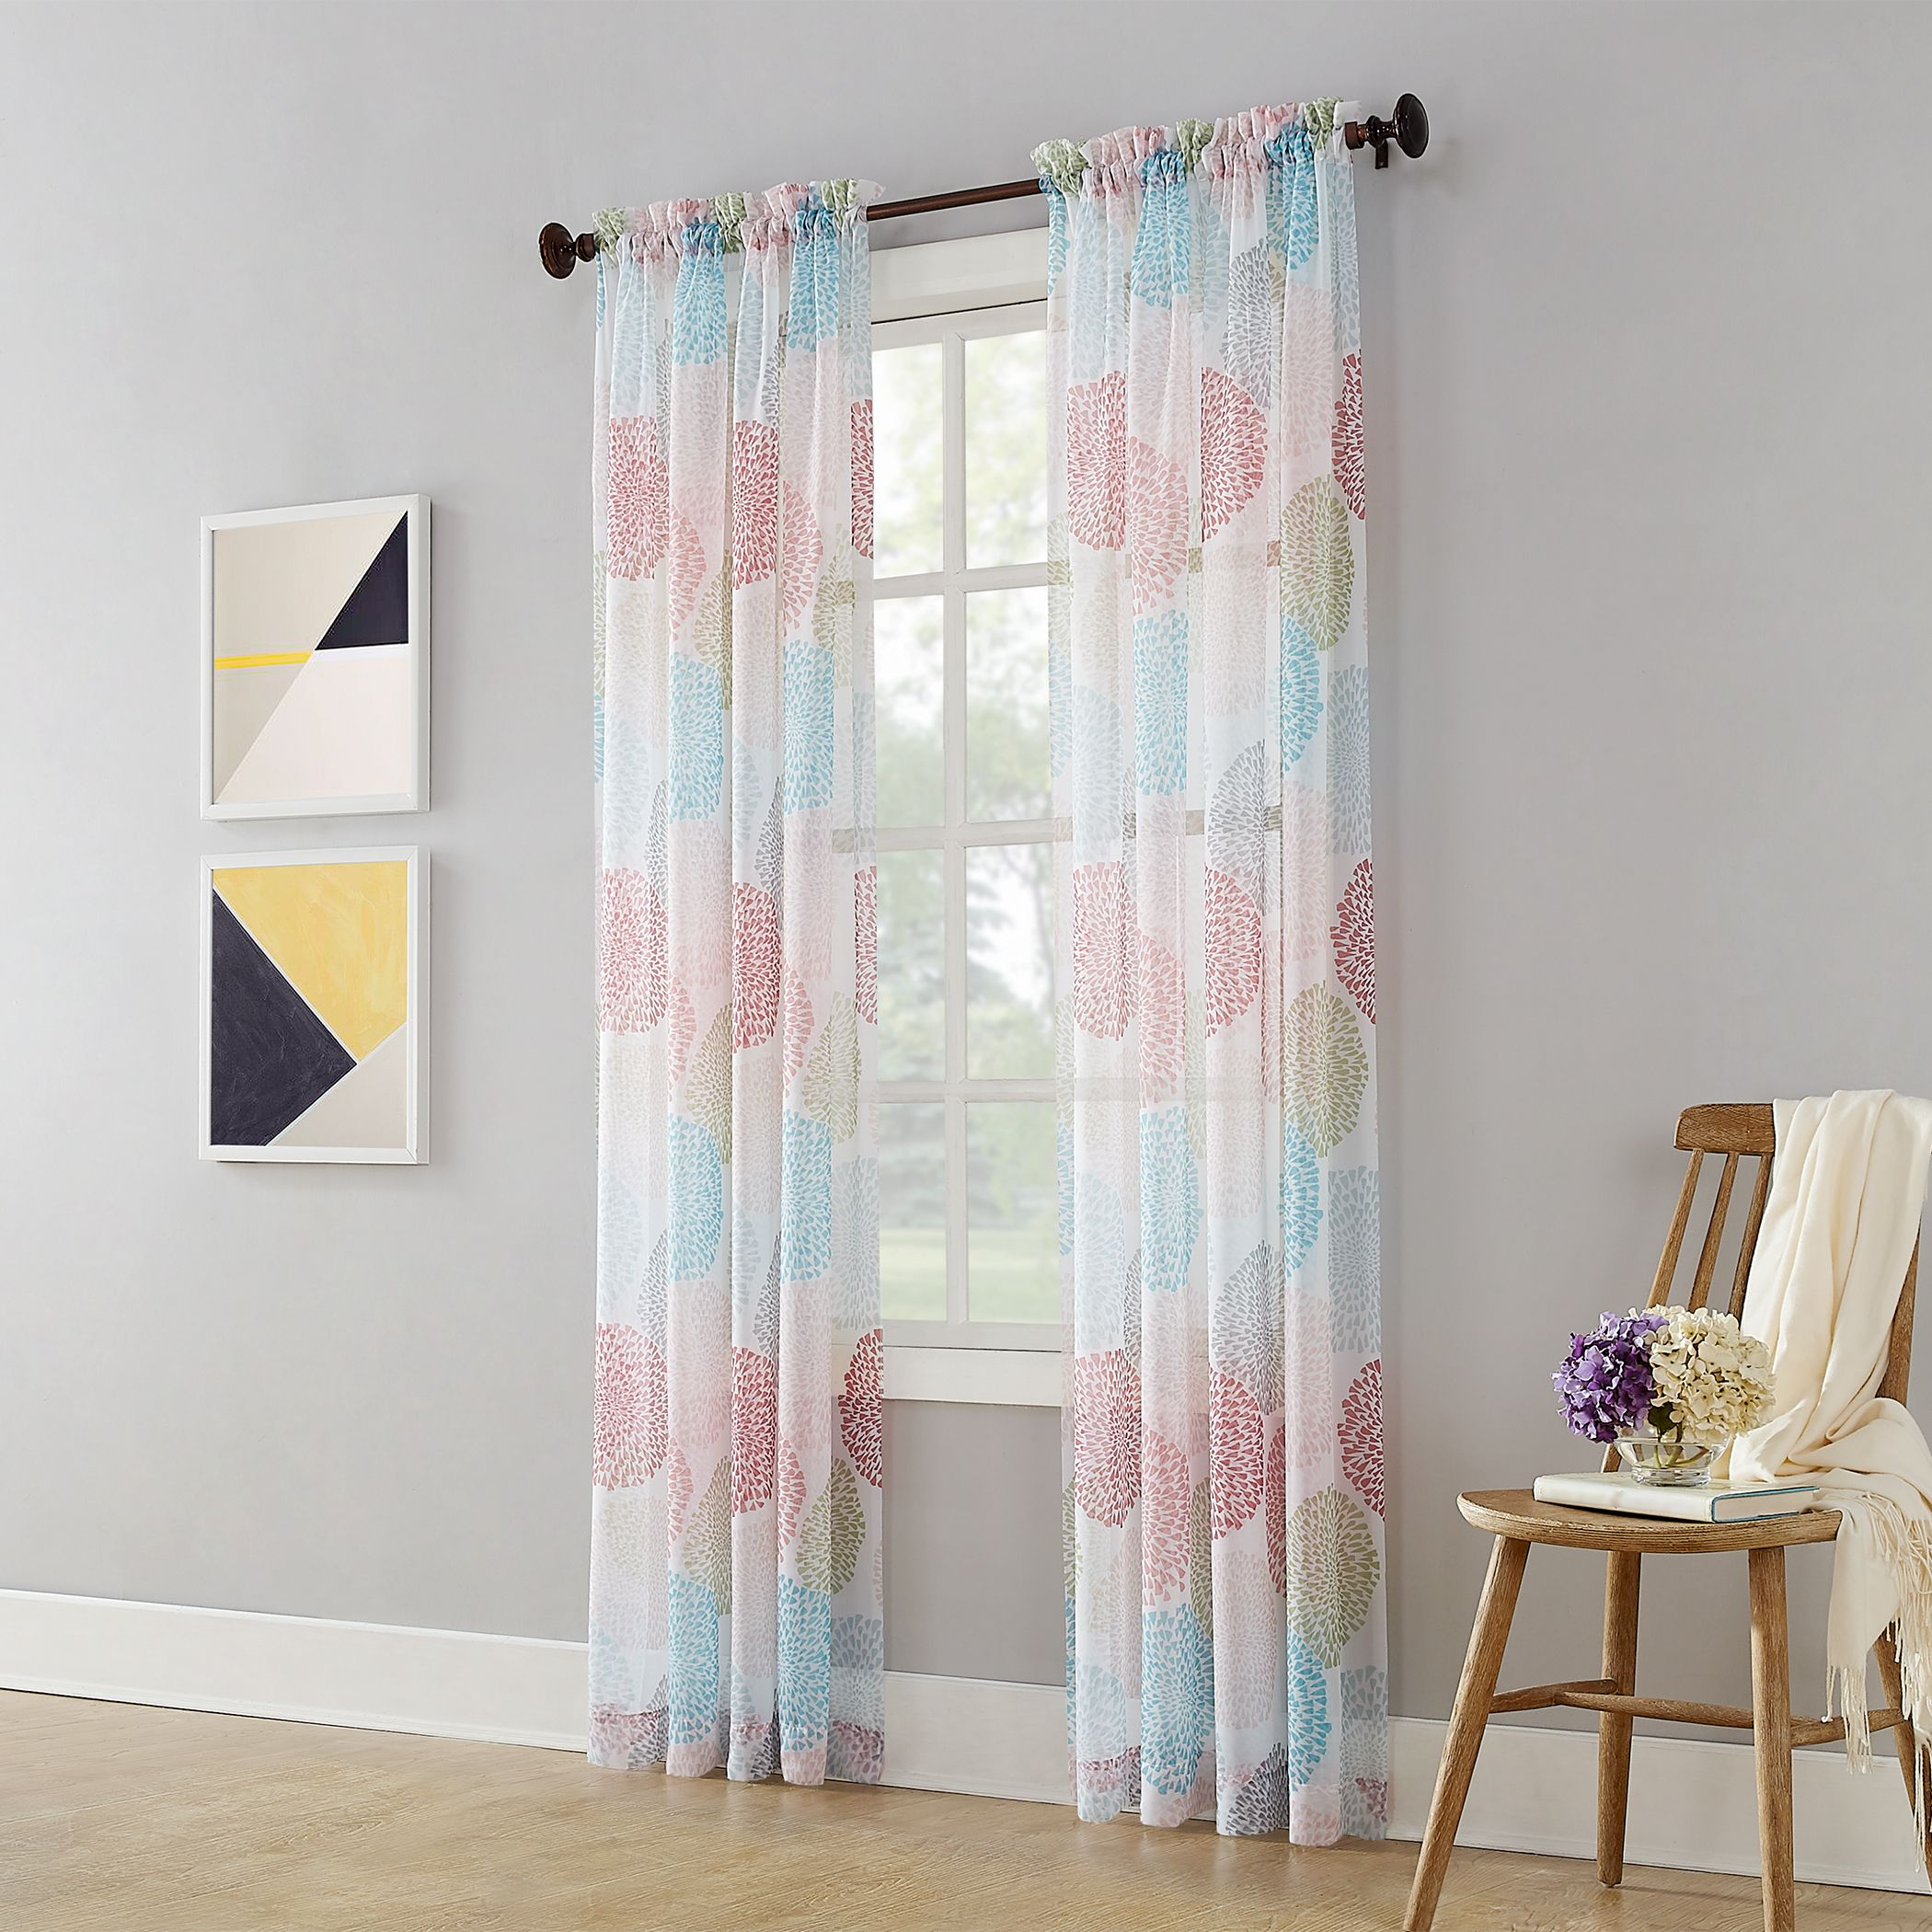 Home Voile Curtains Panel Curtains Curtains